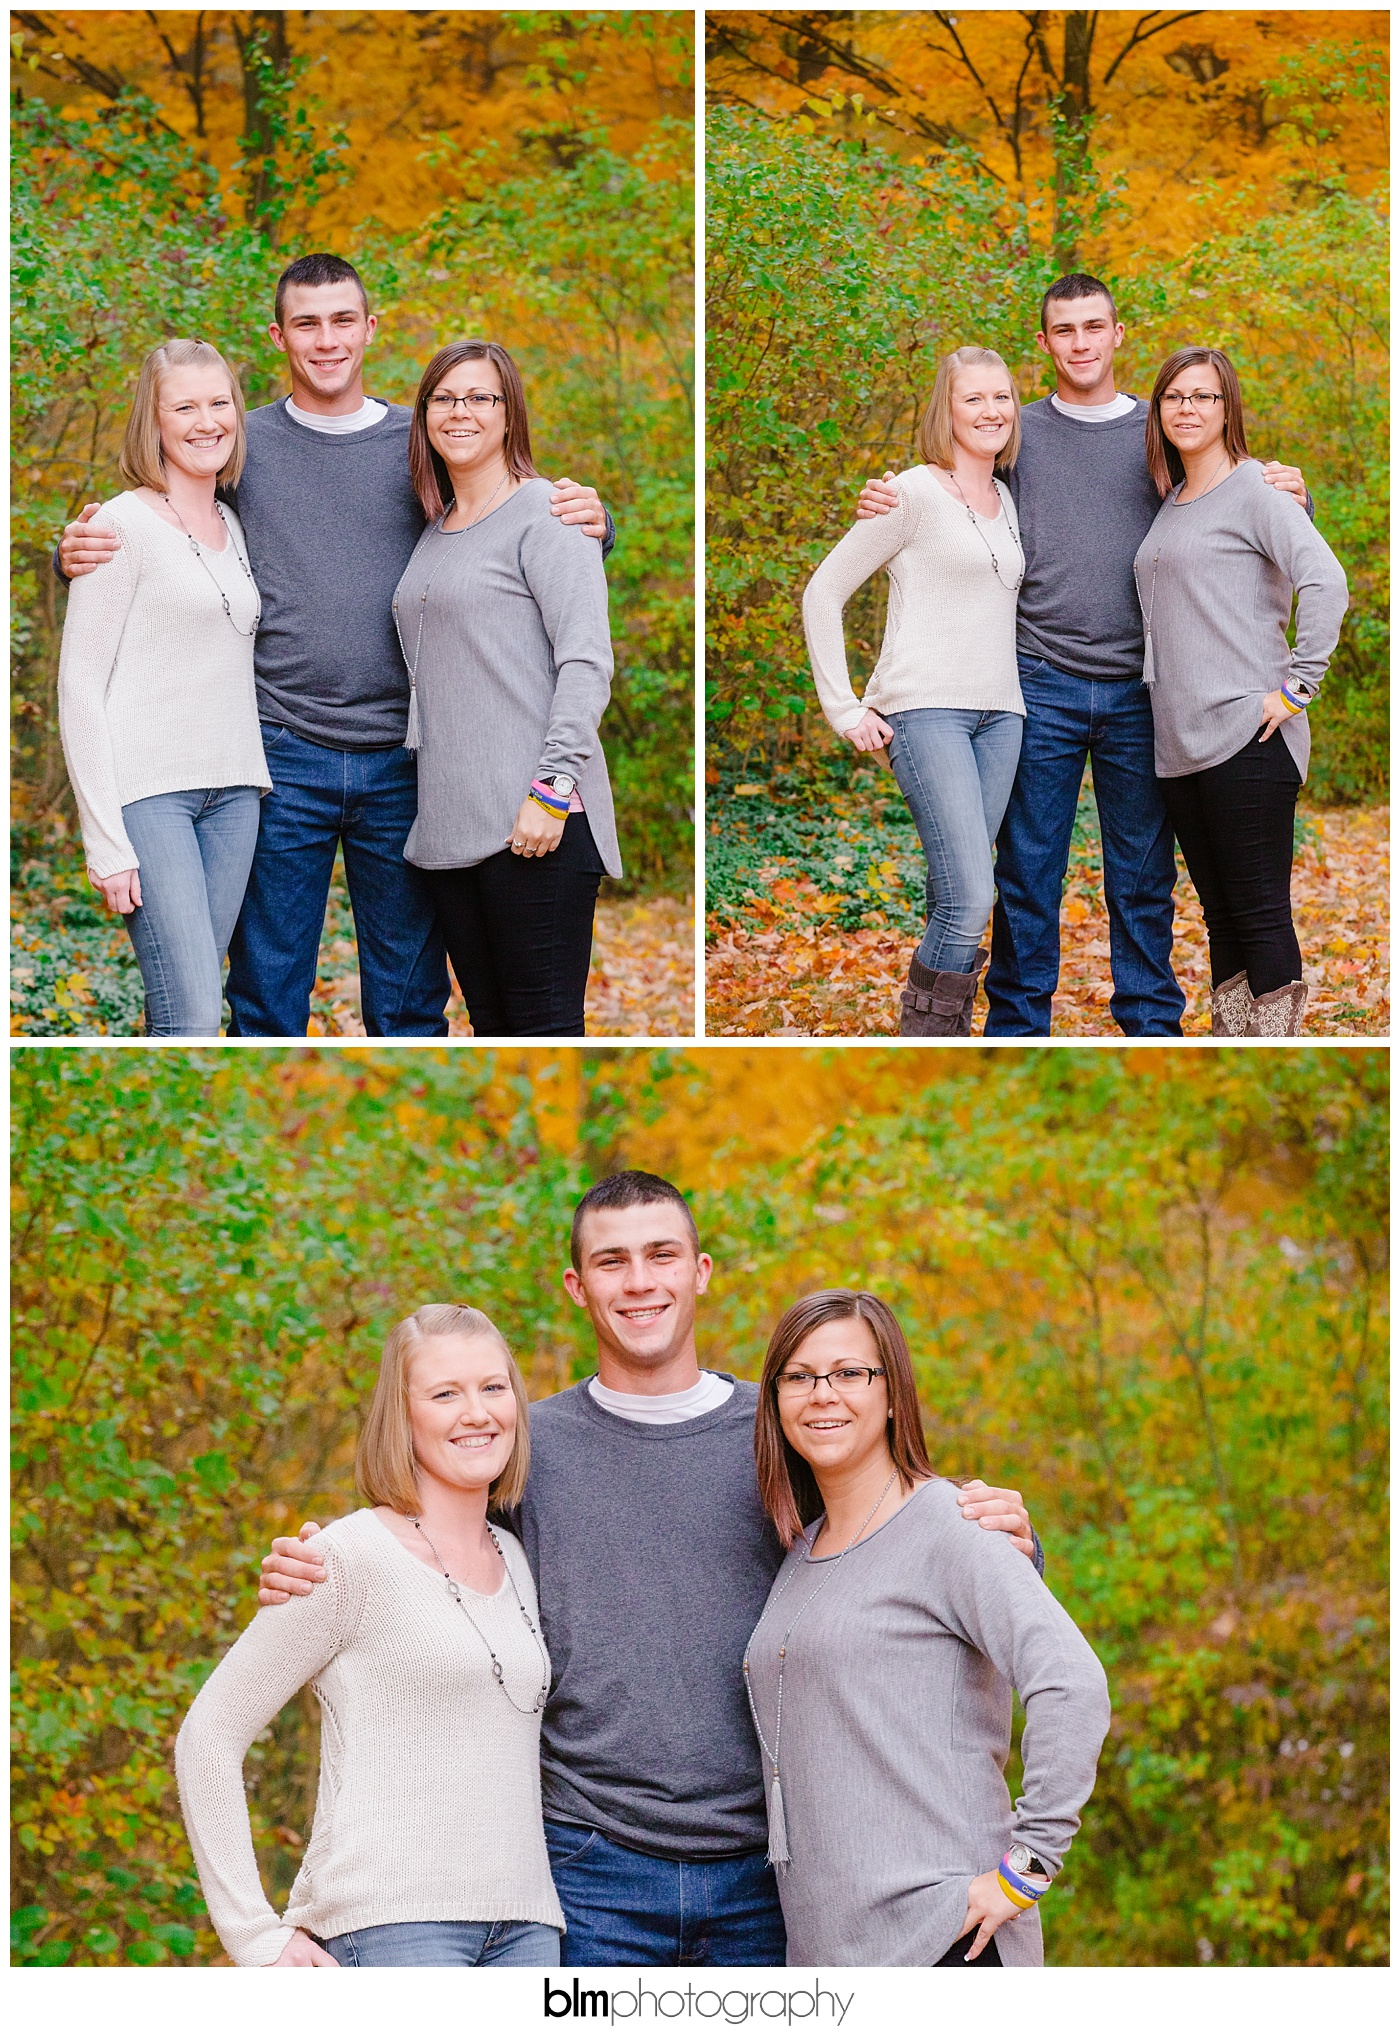 2016,20161018,9328,Ashley,BLM,BLM_9328,Boutwell Family,Boutwell-Family-Portraits,Brianna Morrissey,CCF,Cody,Cold Comfort Farm,Home,Mark,Morgan,NH,October,Outdoor,Personal,Pet,Peterborough,Photographer,Photography,Portrait,Sandy,Terry,